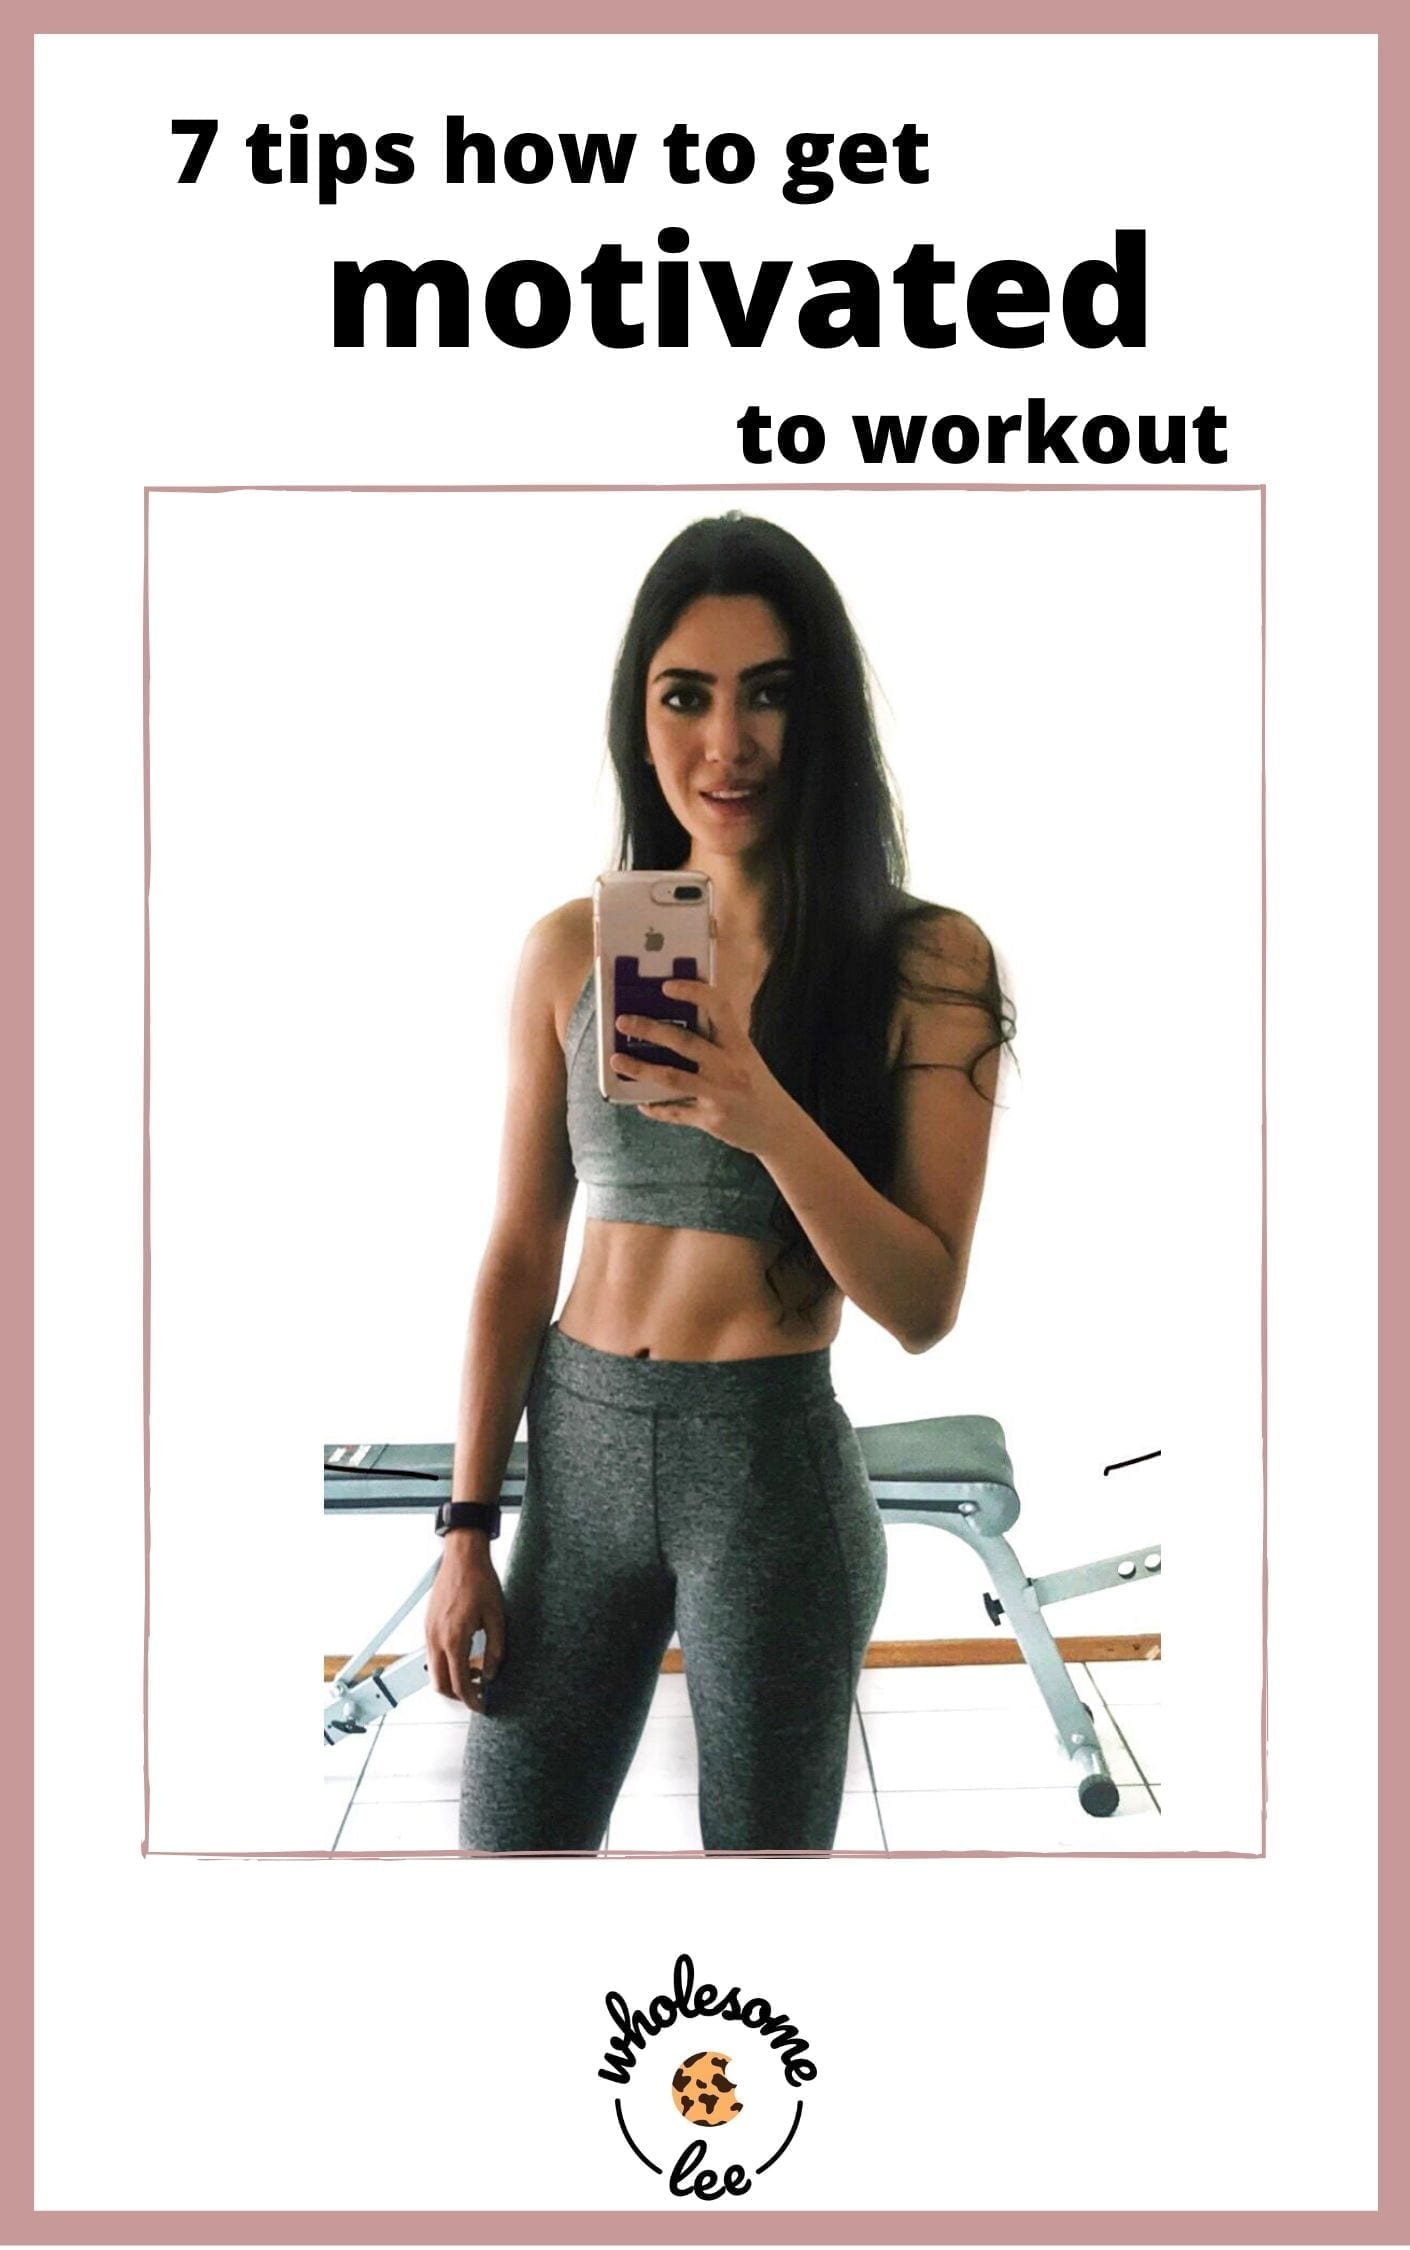 7 tips on how to get motivated to workout